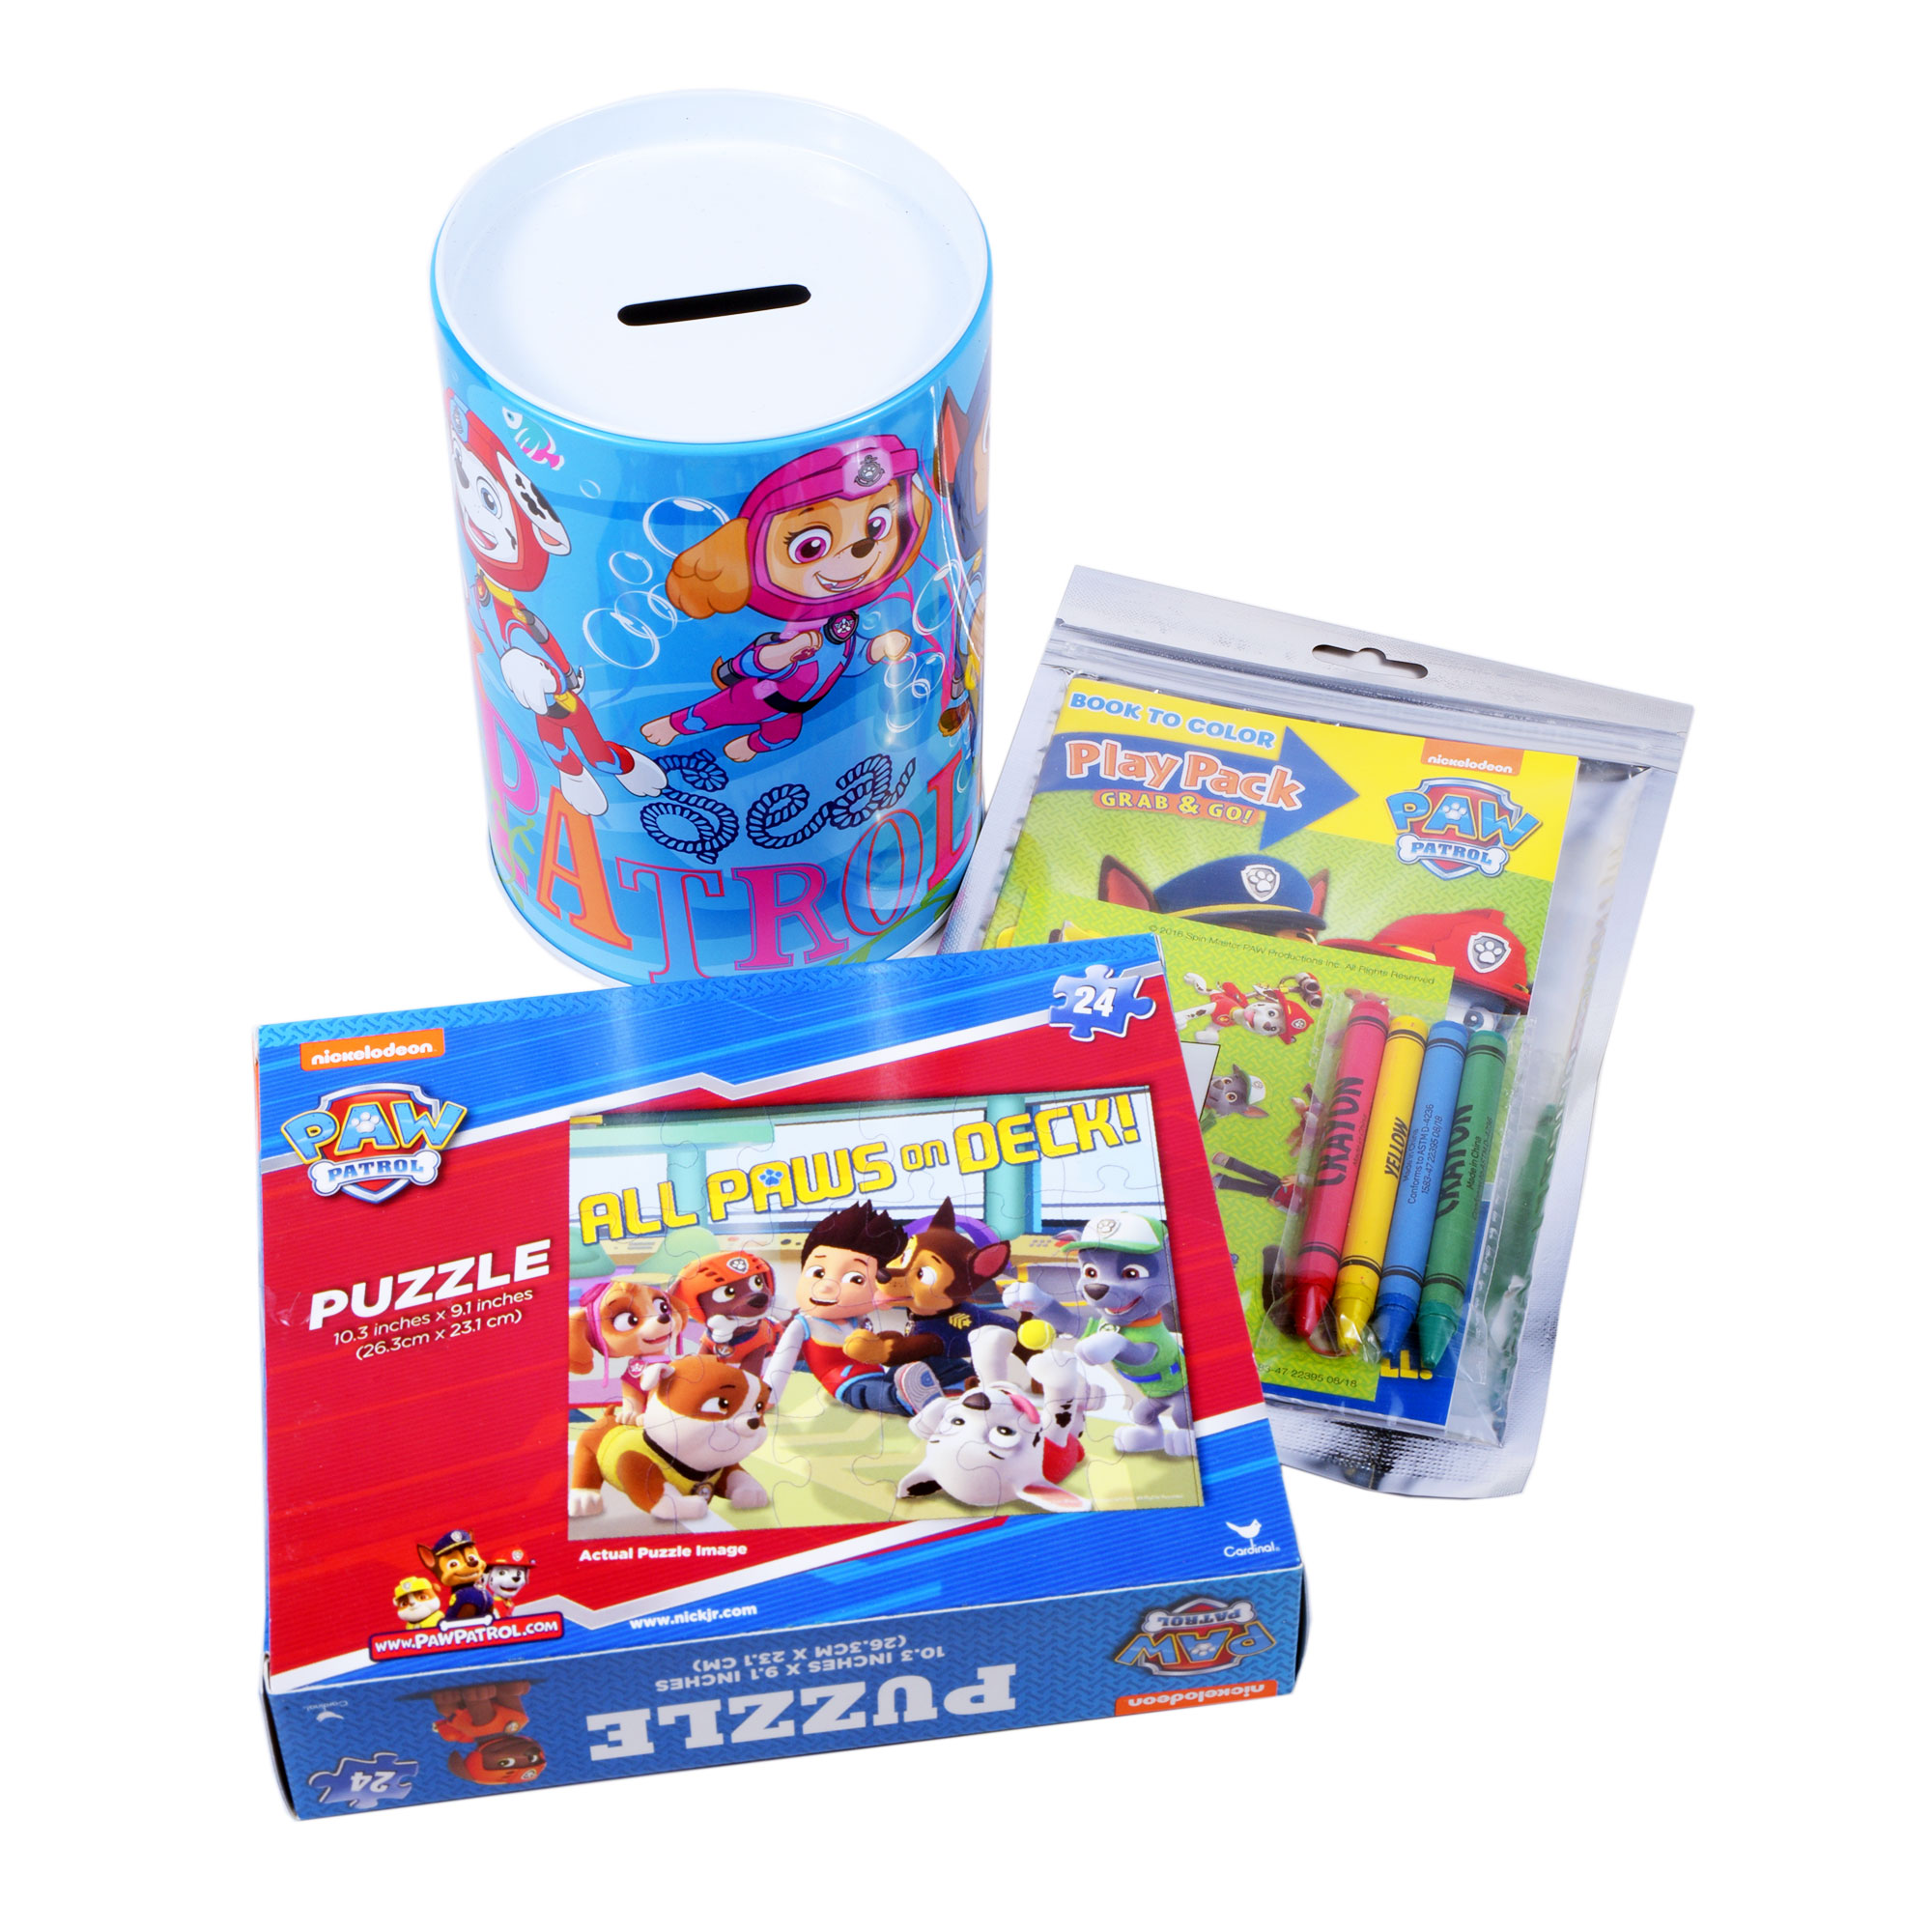 Kids Toy Gift Nickelodeon Paw Patrol Party Favor Supplies Swim Piggy Coin  Bank Jigsaw Puzzle Coloring Book - Goody Bags - Walmart.com - Walmart.com